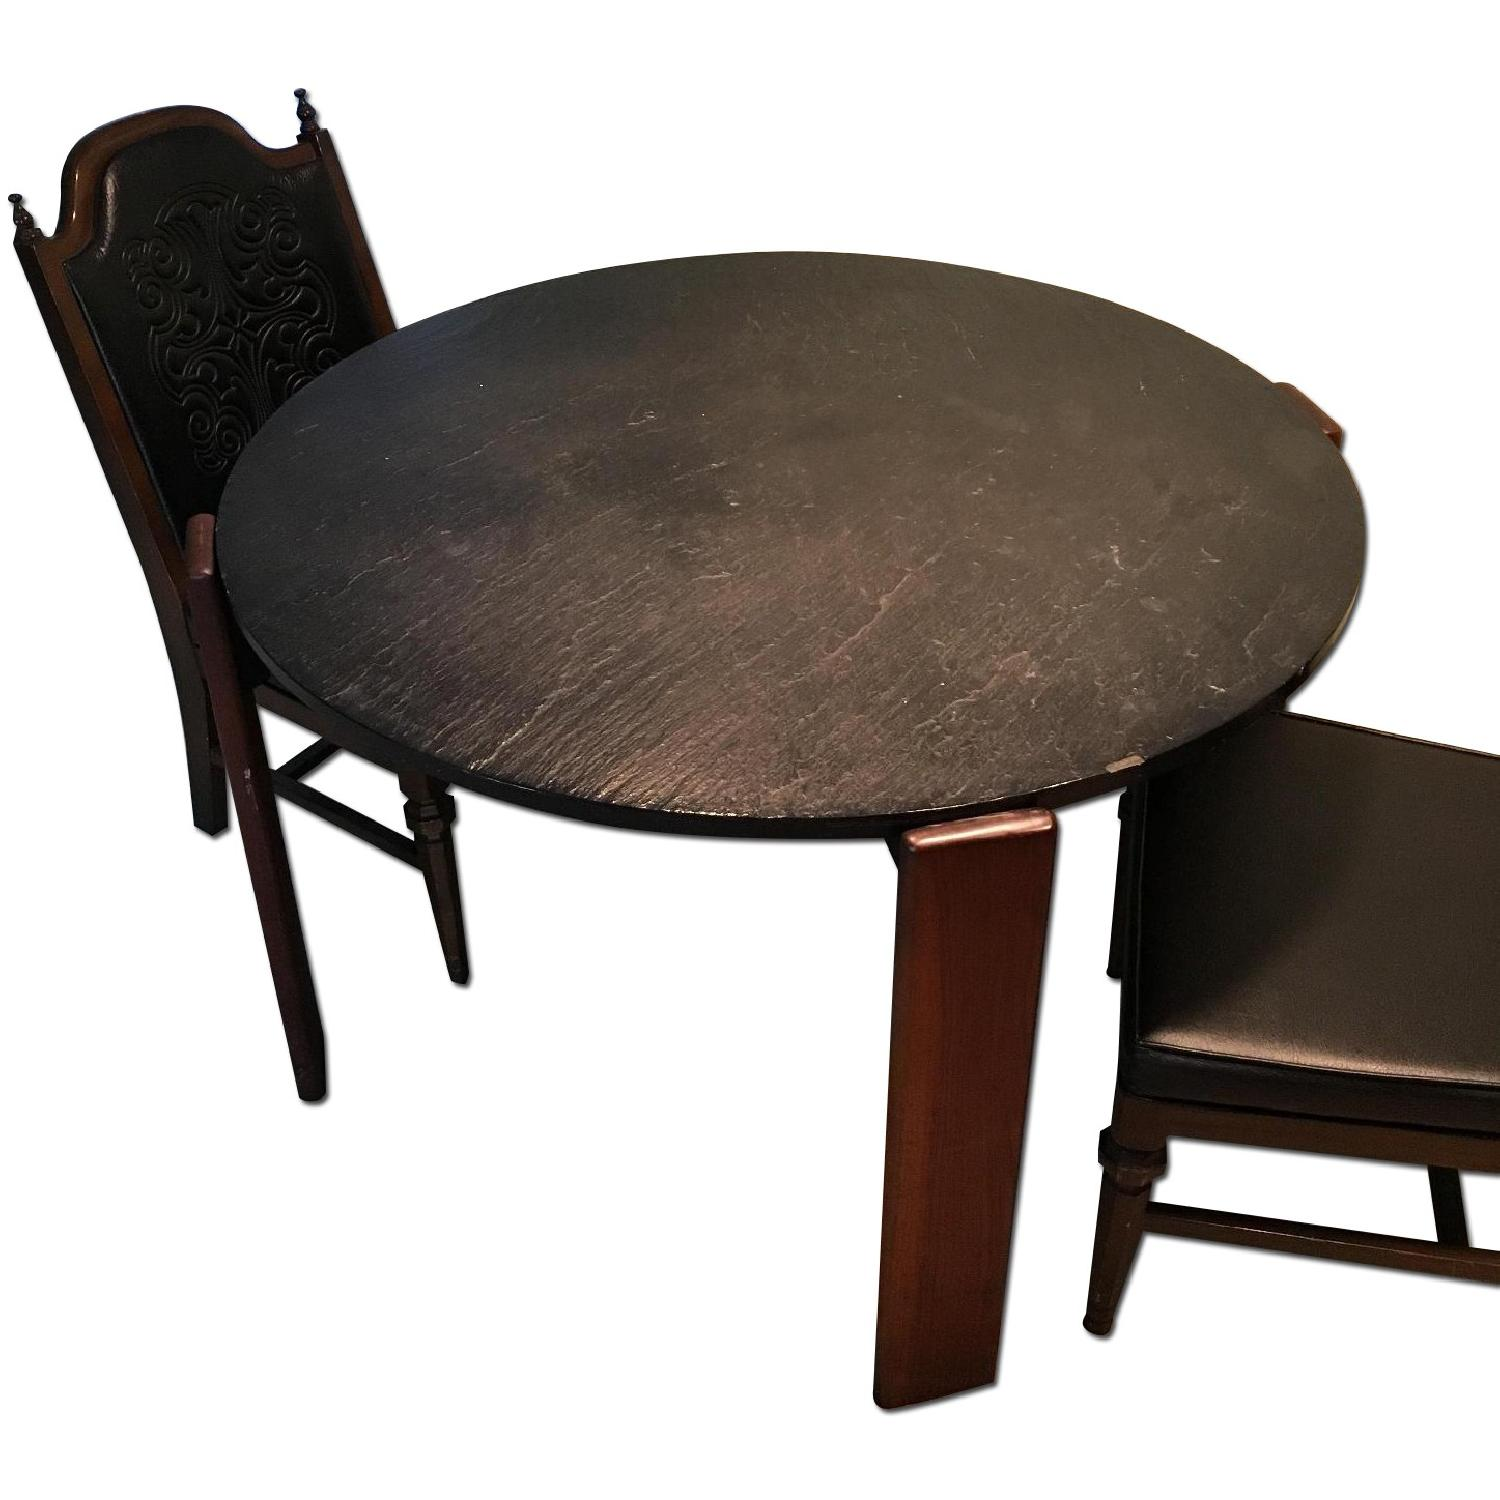 1960s Black Slate Dining Table w/ 4 Chairs - image-0